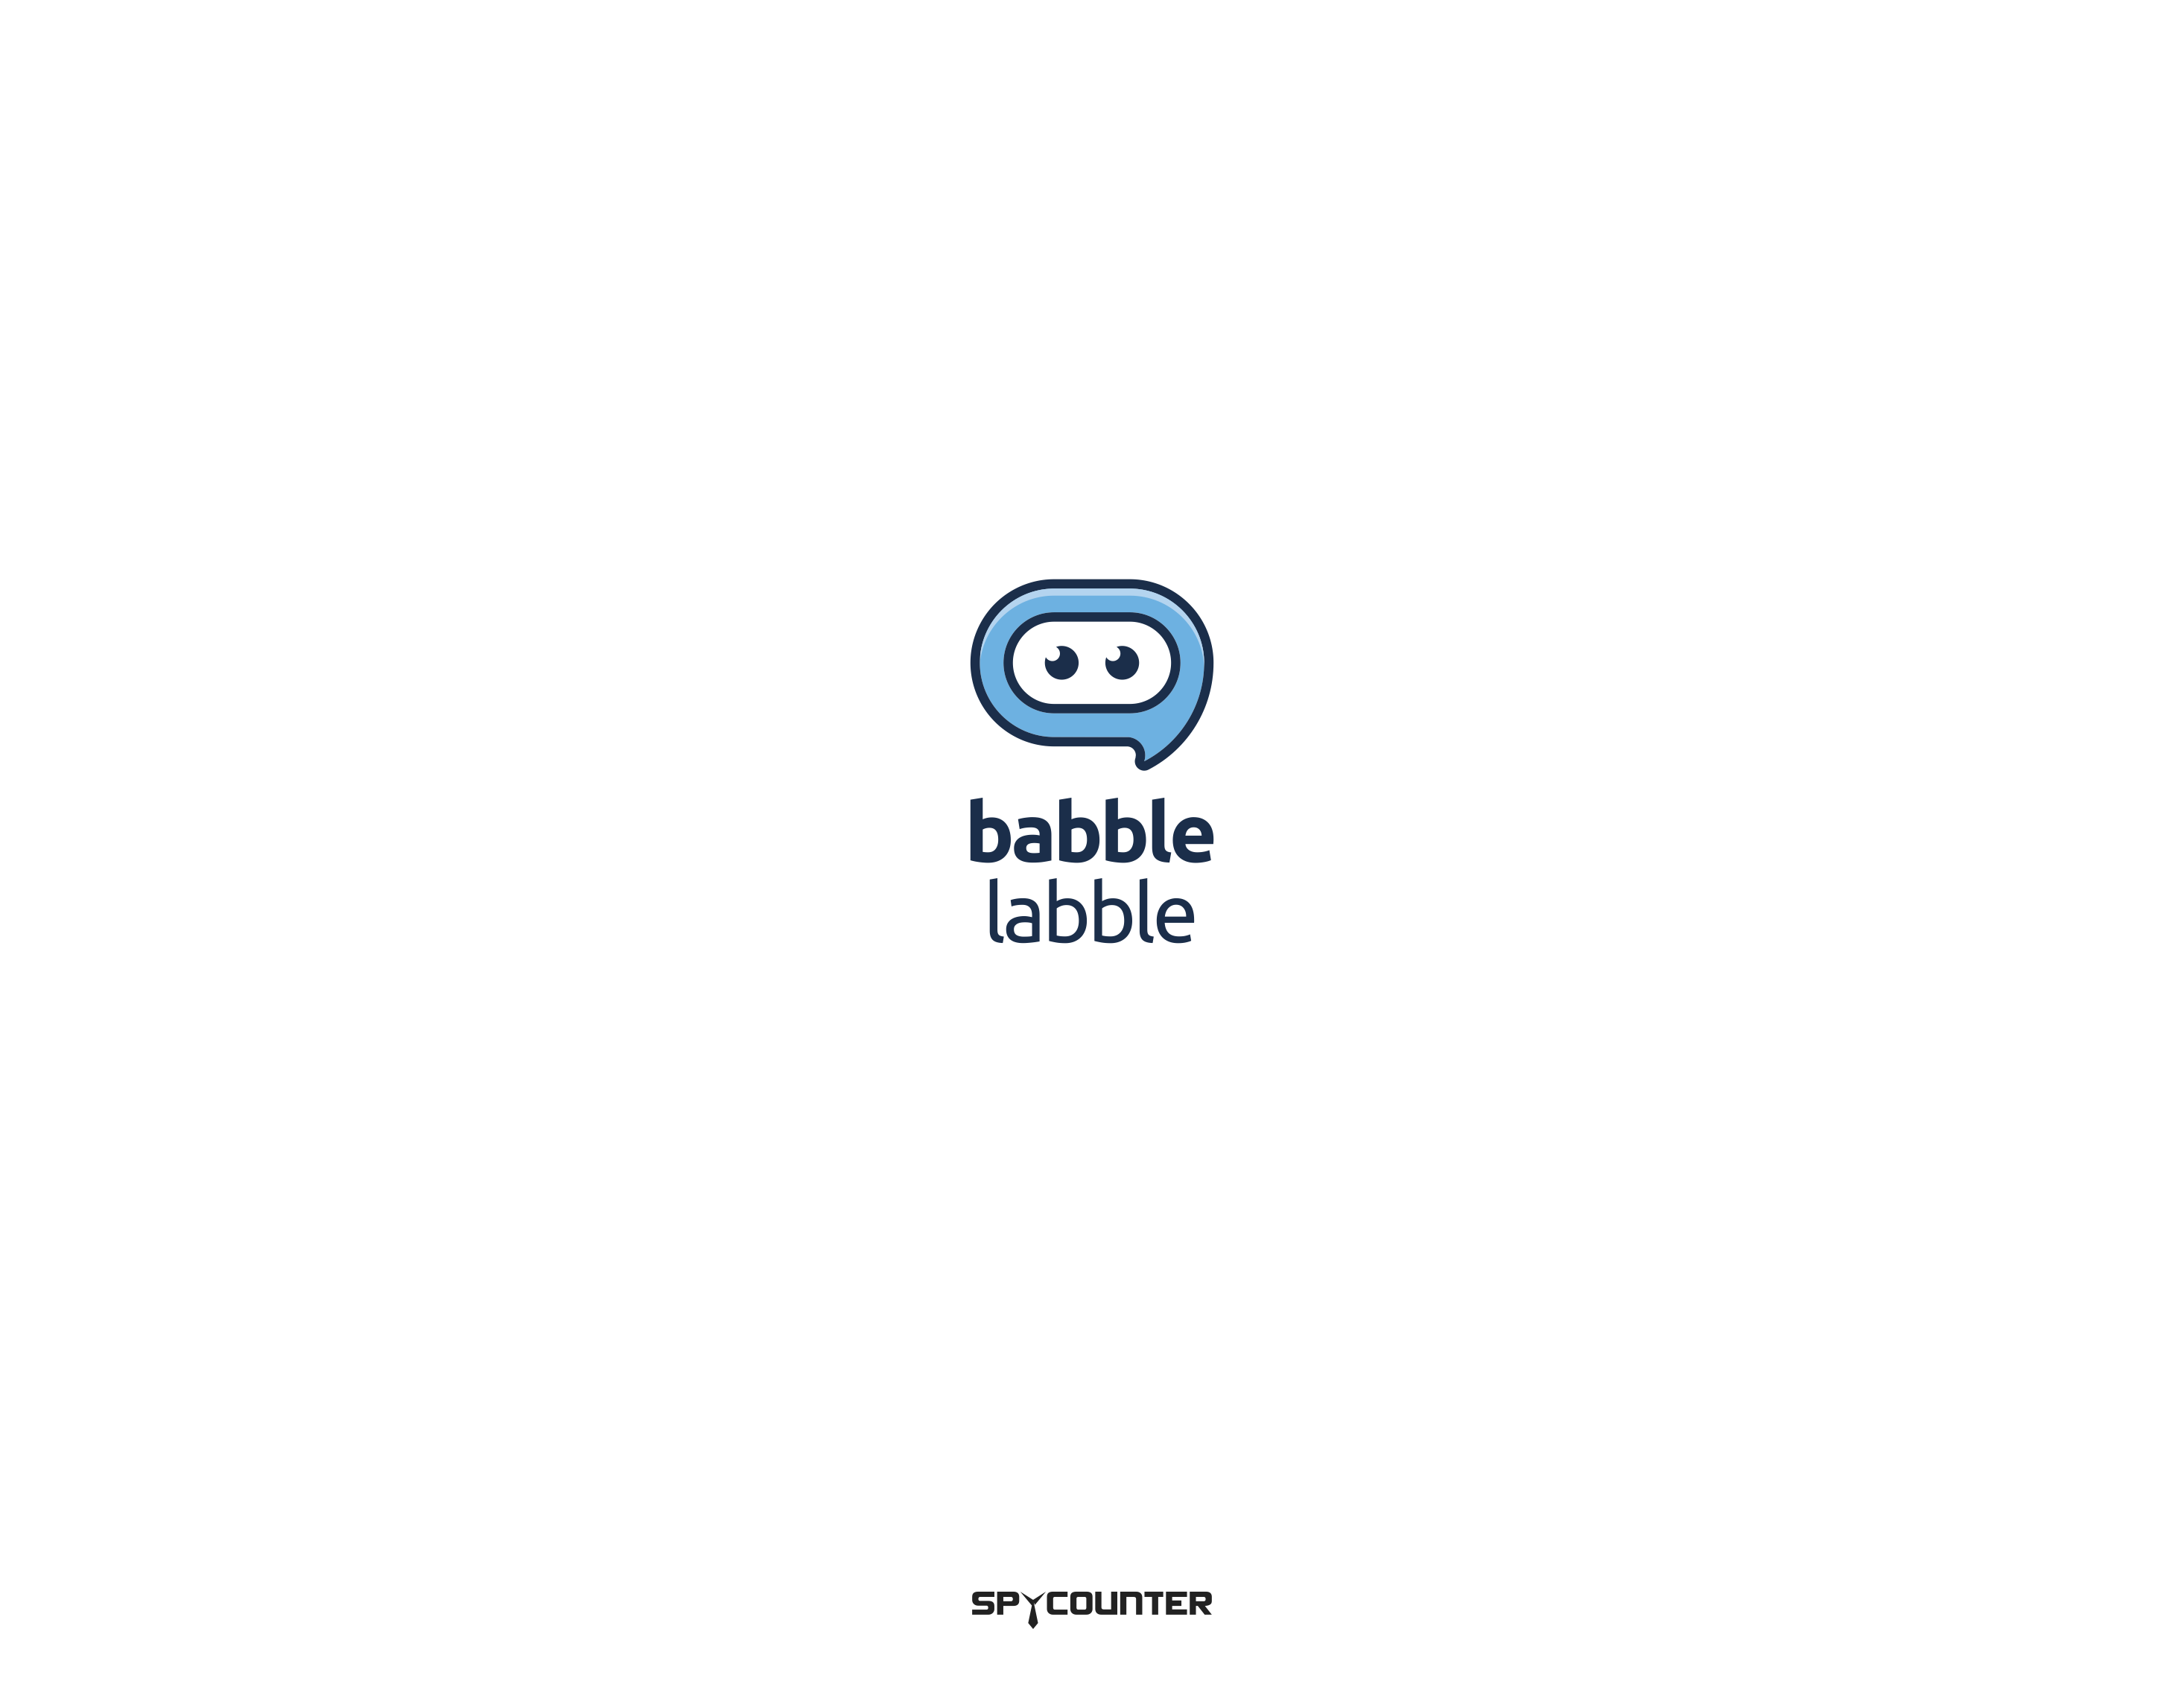 Design a logo for Babble Labble, a speech-guided machine learning system